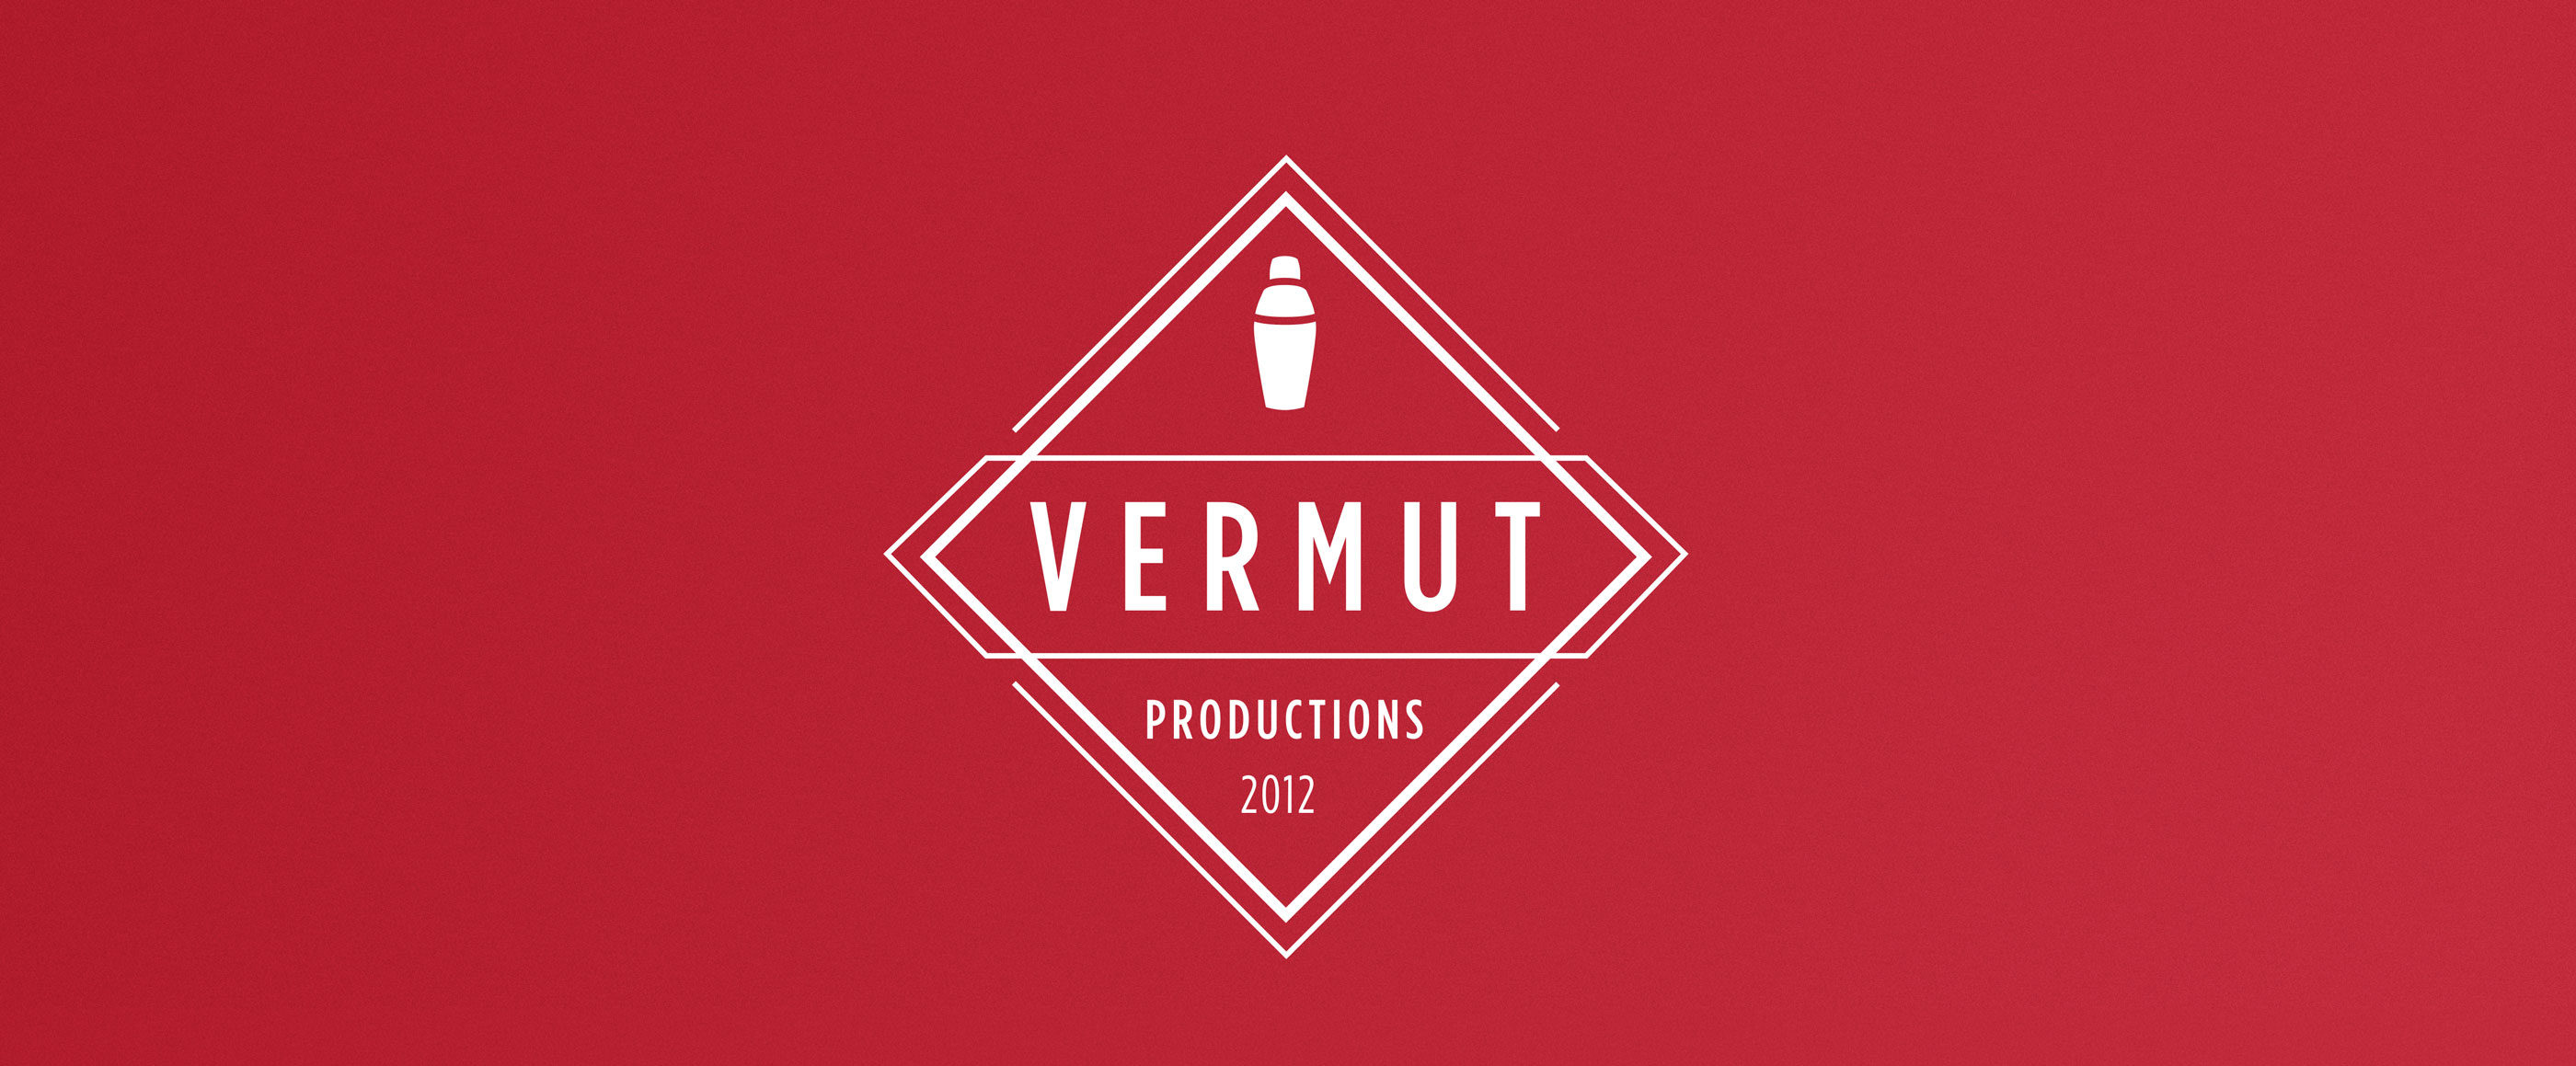 Vermut Productions in construction